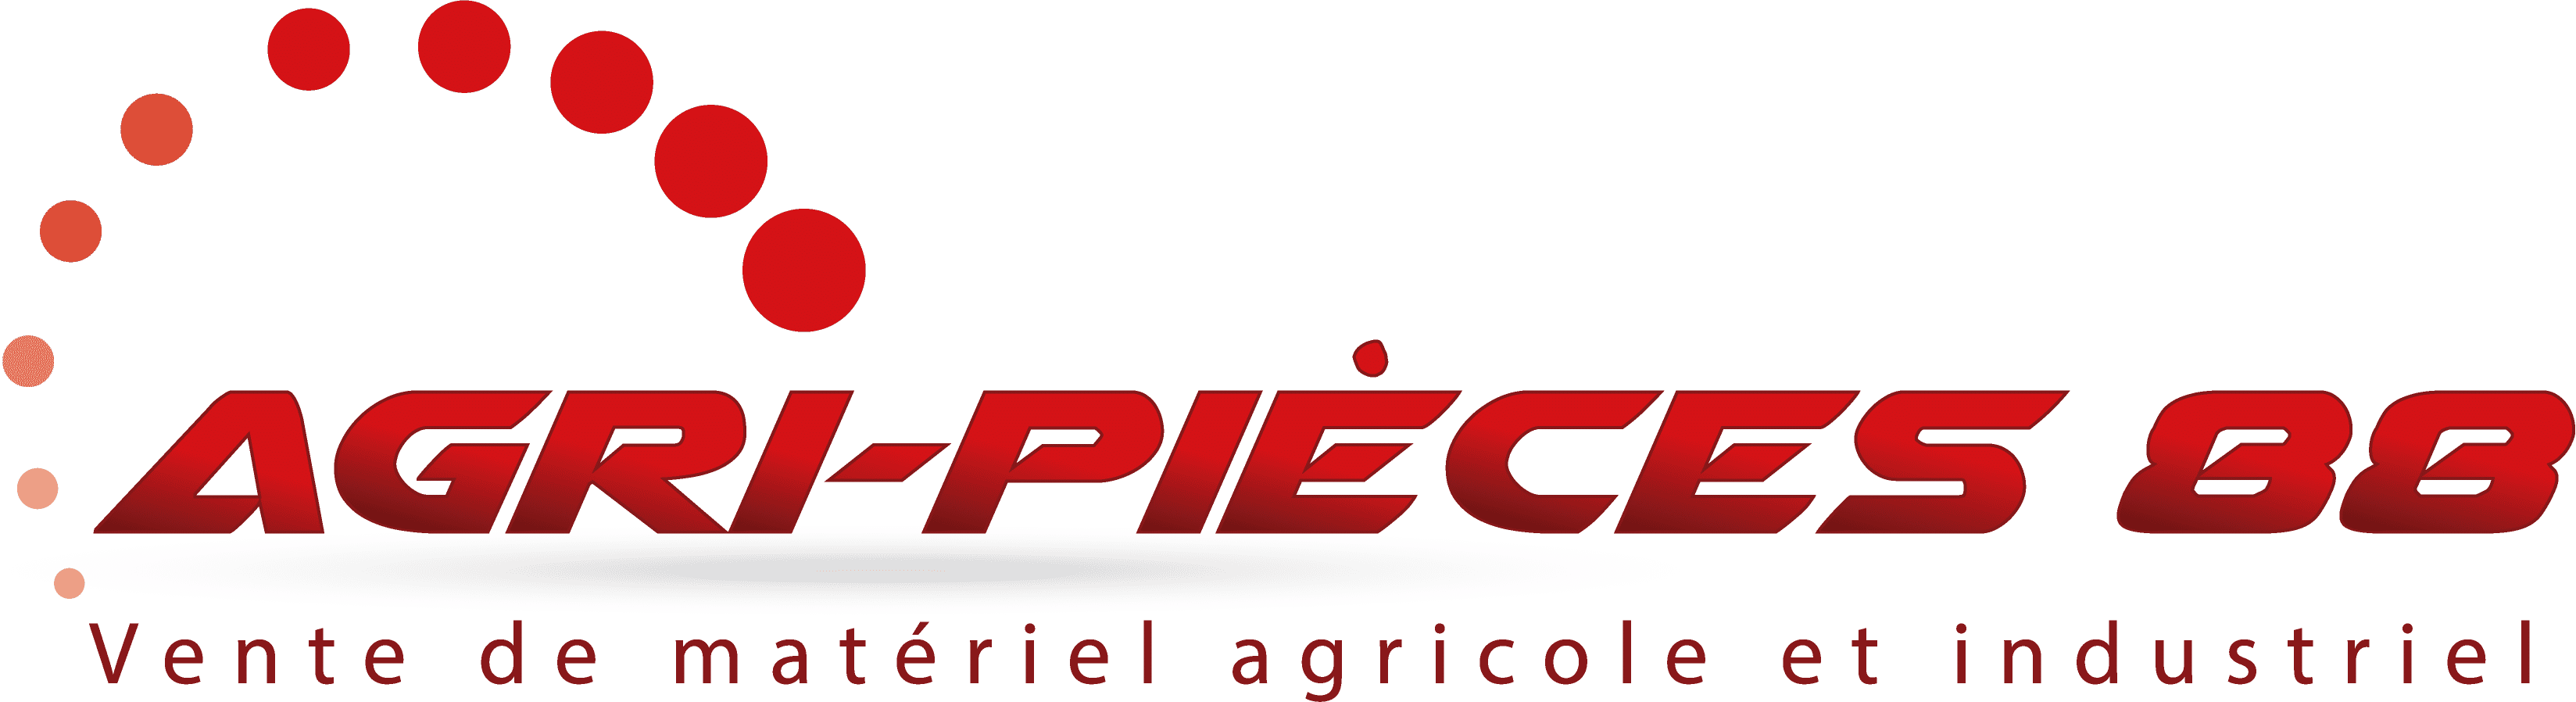 AGRI PIECES